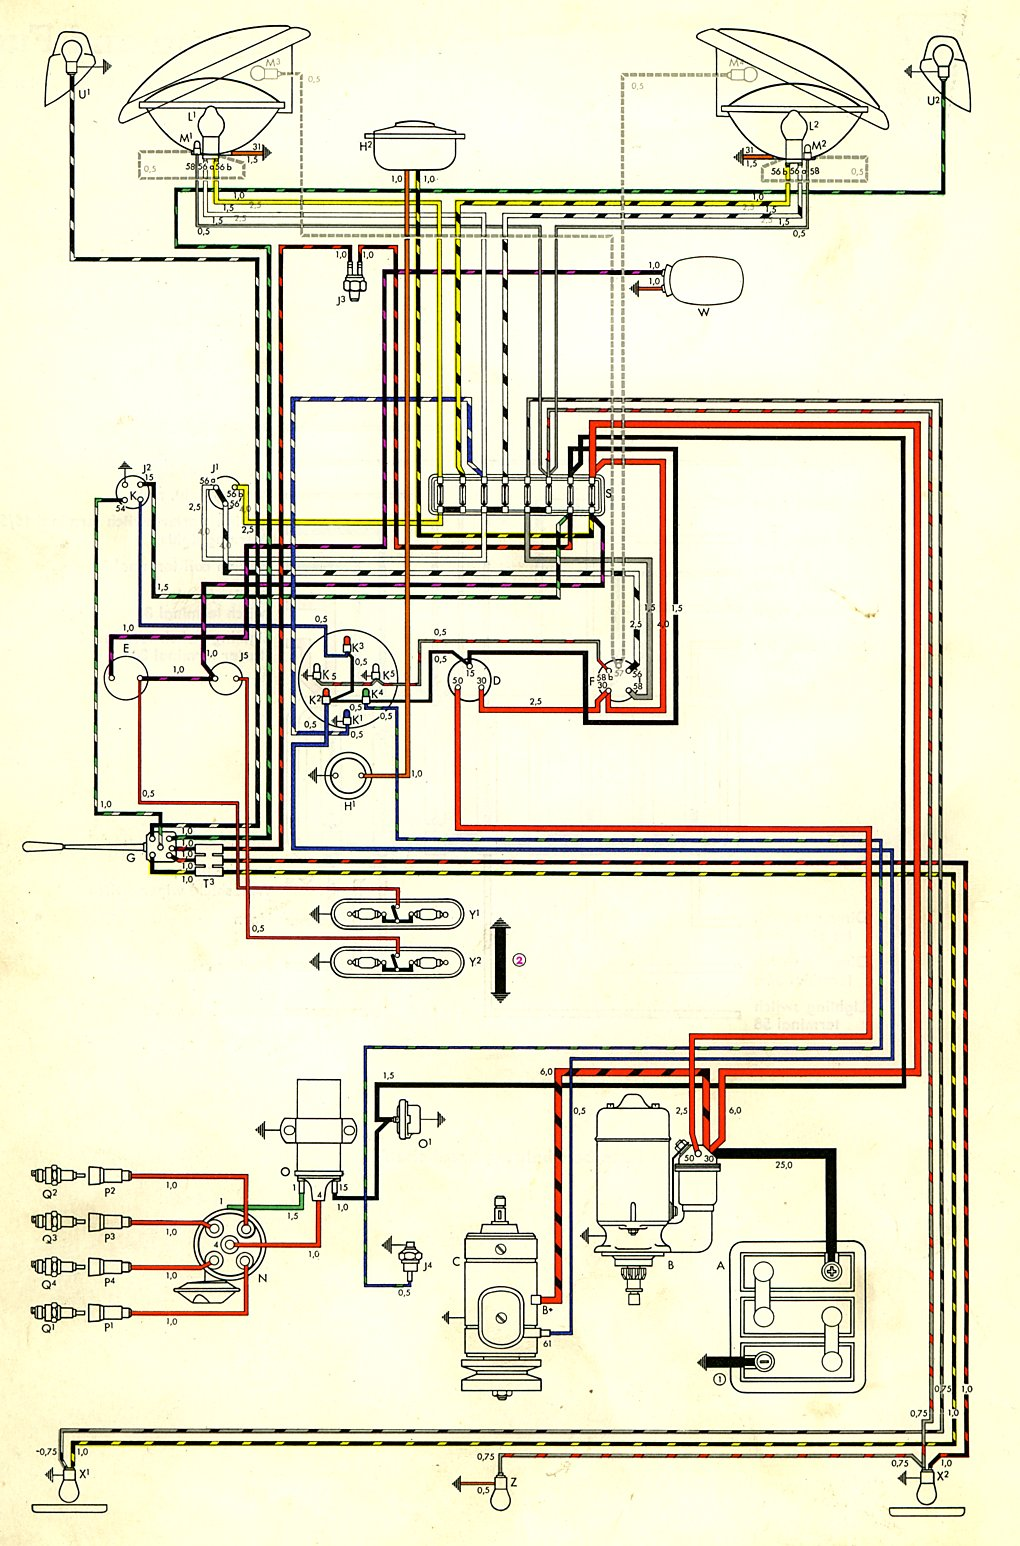 1971 Chevy C10 Wiring Diagram Circuit Schematic 71 Camaro Truck Ignition Starting Know About Light